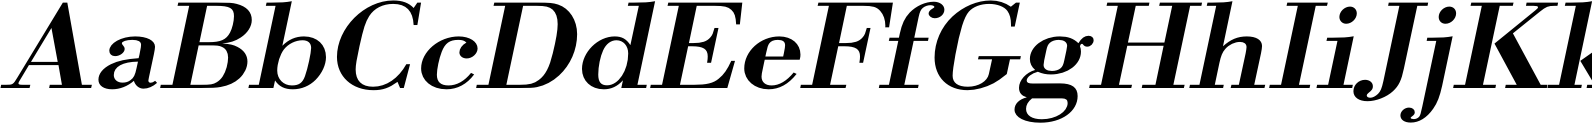 Bodoni URW Extra Wide Medium Oblique Font